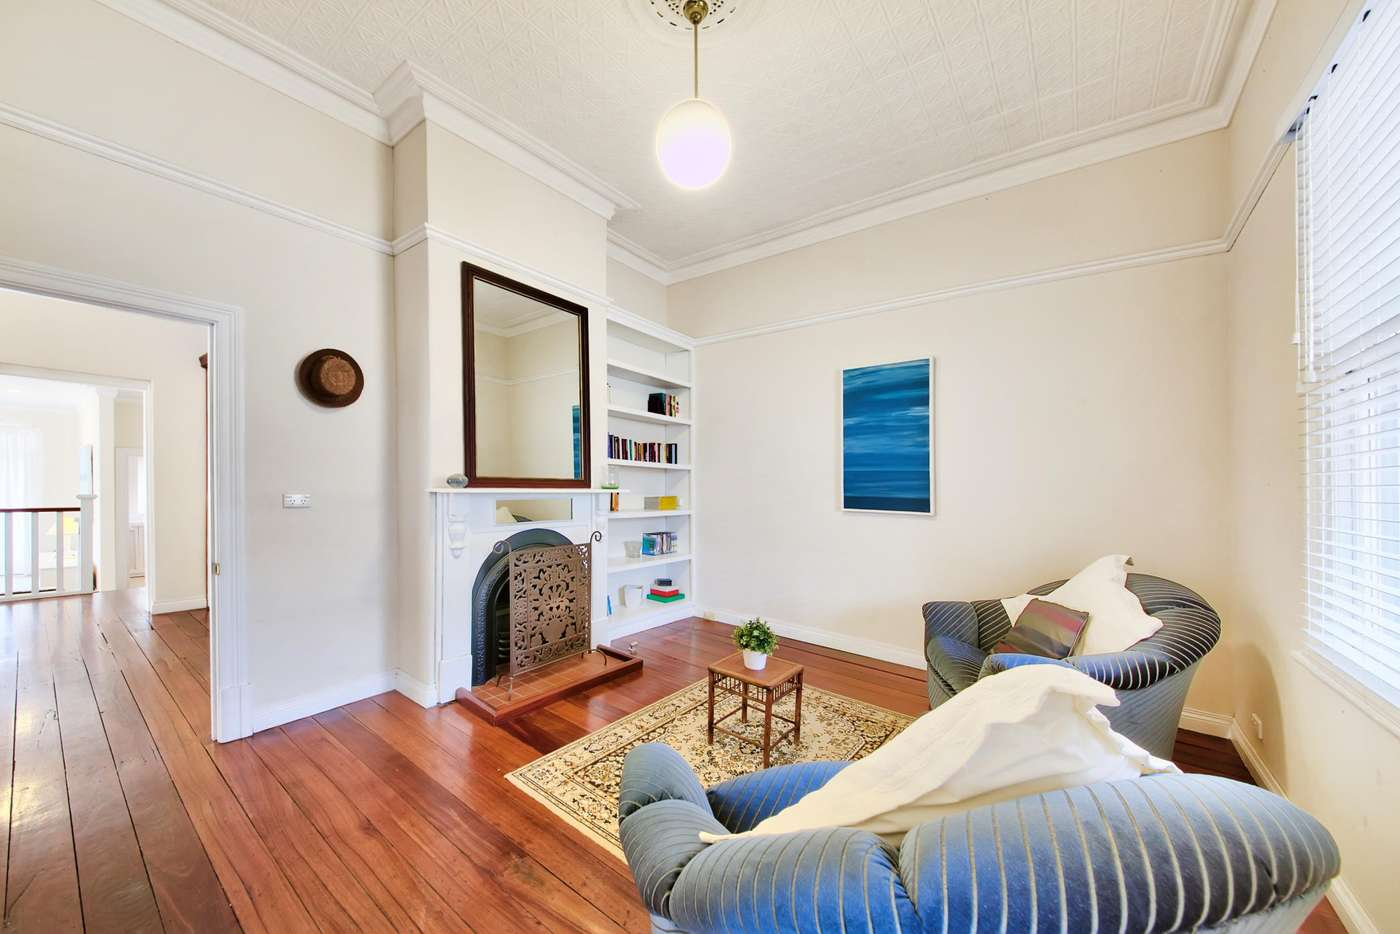 Sixth view of Homely house listing, 138 Loftus Street, North Perth WA 6006